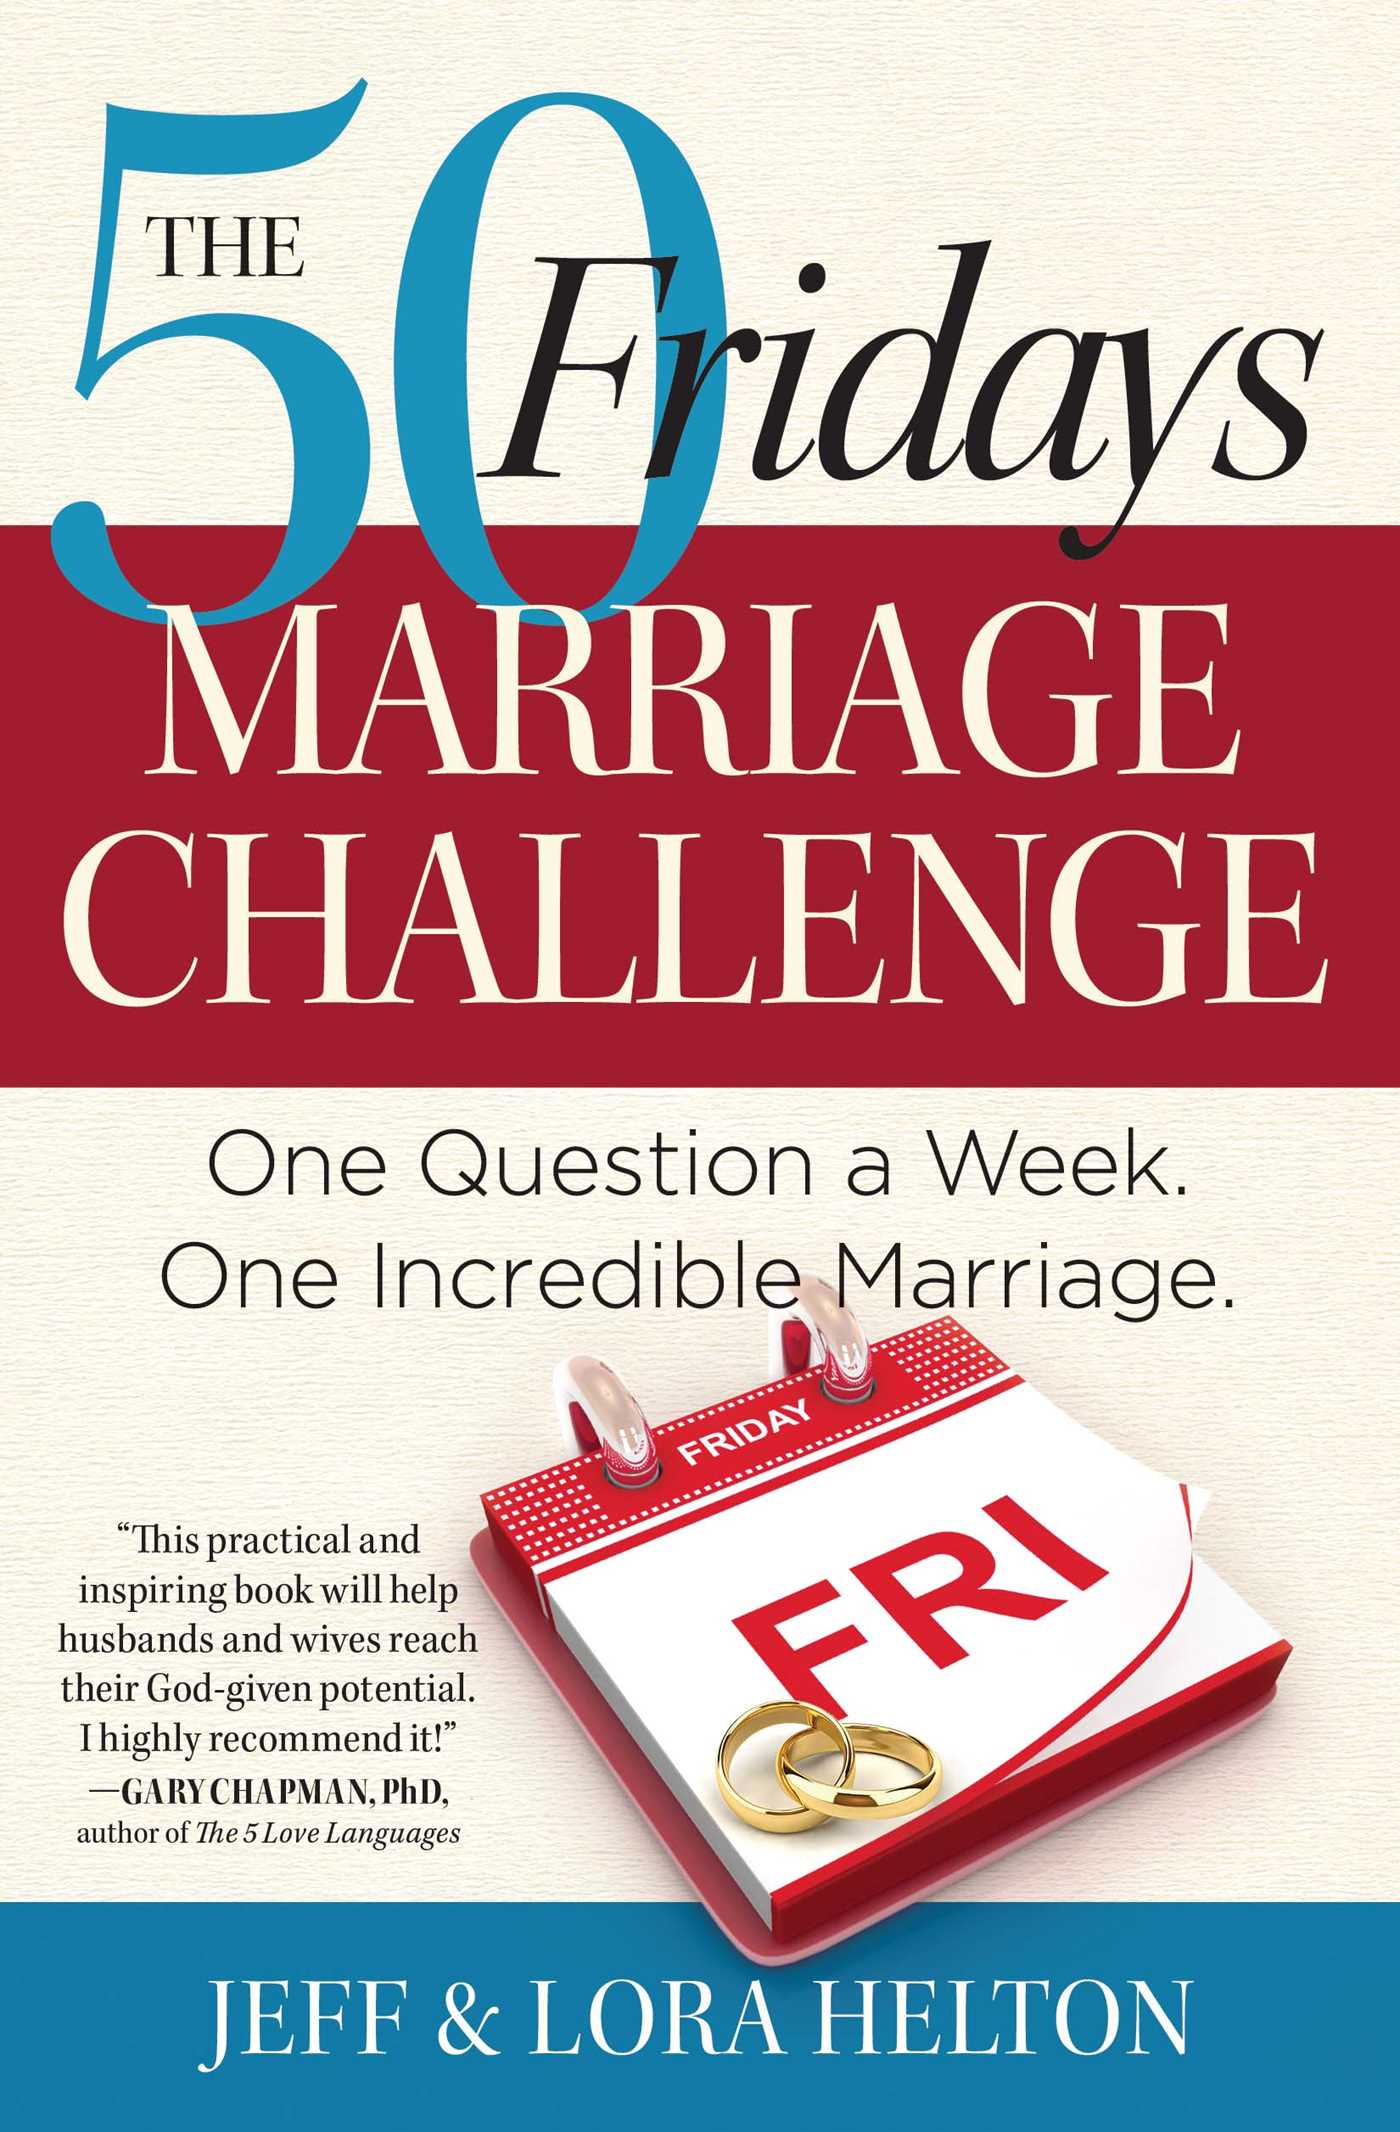 The-50-fridays-marriage-challenge-9781476705002_hr